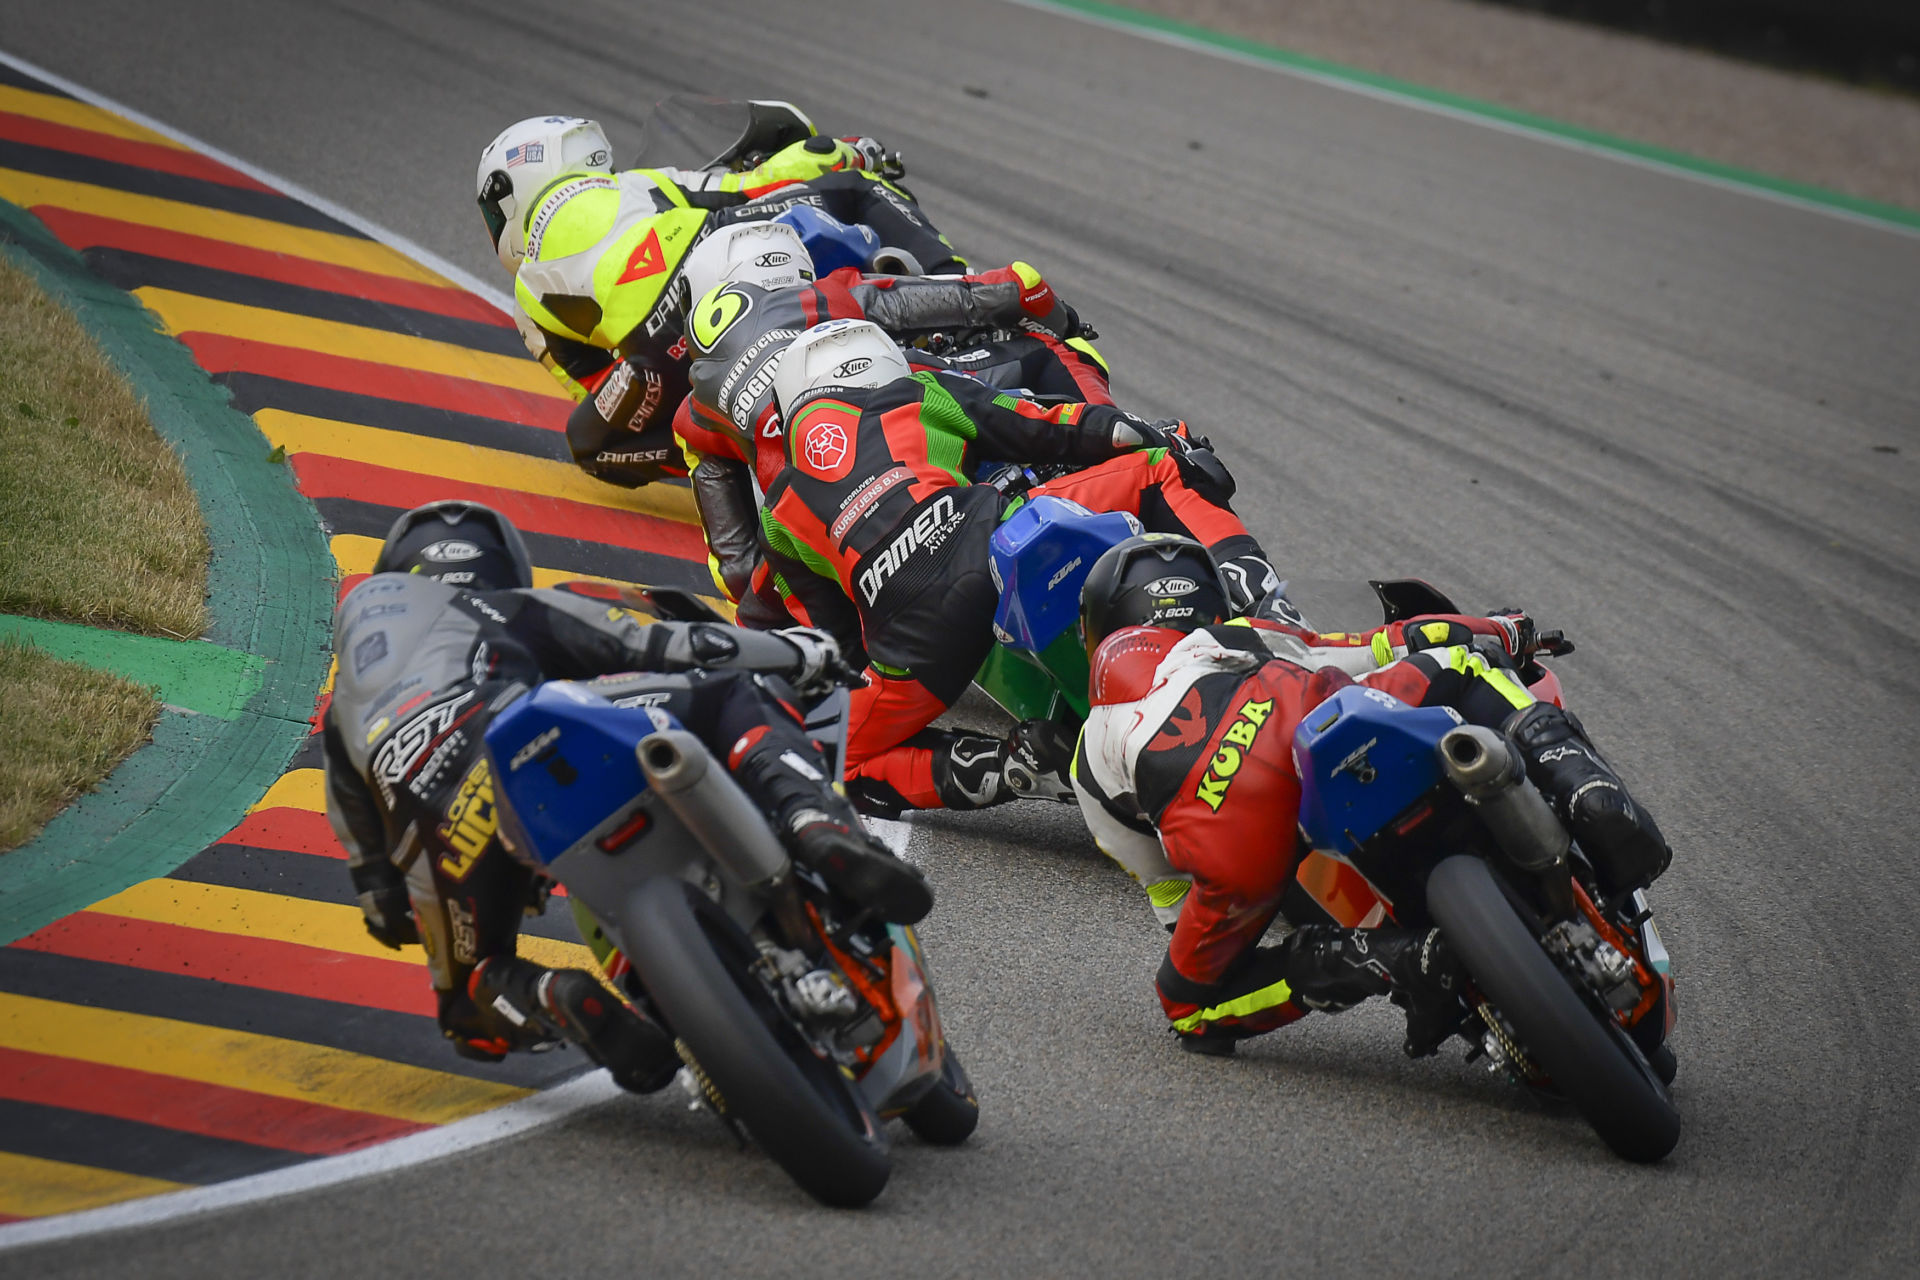 Action from Northern Talent Cup Race One at Sachsenring, with Hungarian American Rossi Moor leading. Photo courtesy Dorna.